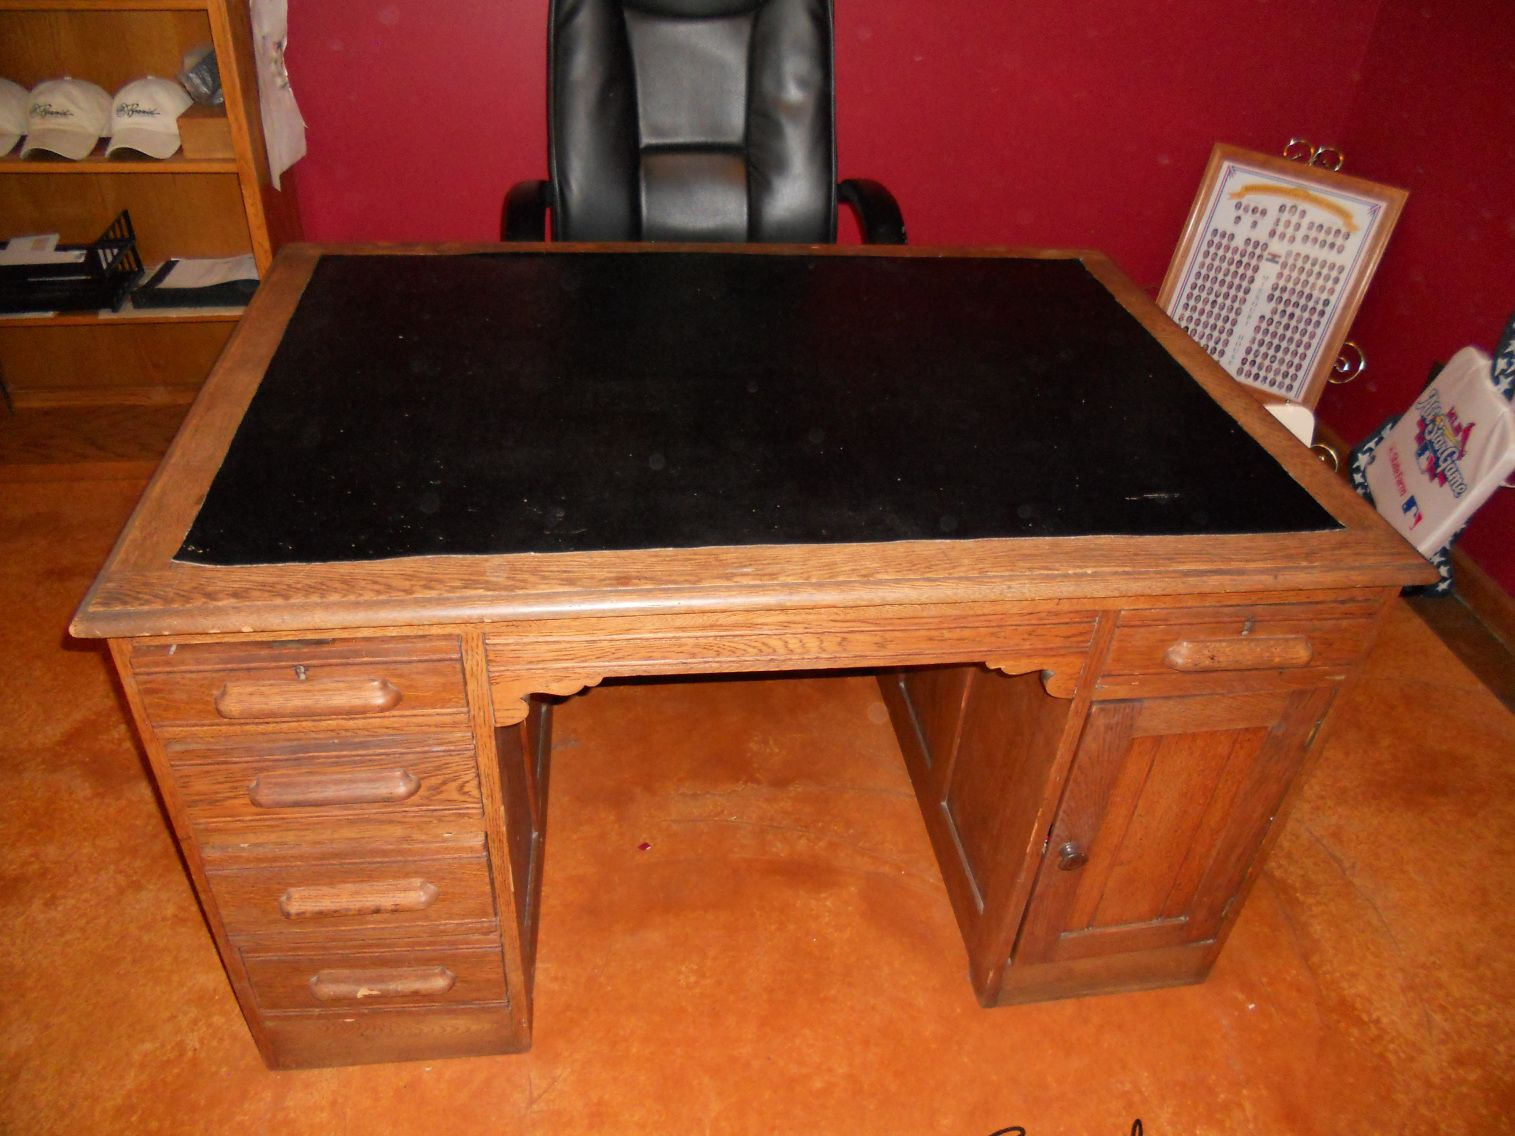 Antique Office Desk for Sale - Home Office Furniture Collections Check more  at http://www.drjamesghoodblog.com/antique-office-desk-for-sale/ - Antique Office Desk For Sale - Home Office Furniture Collections